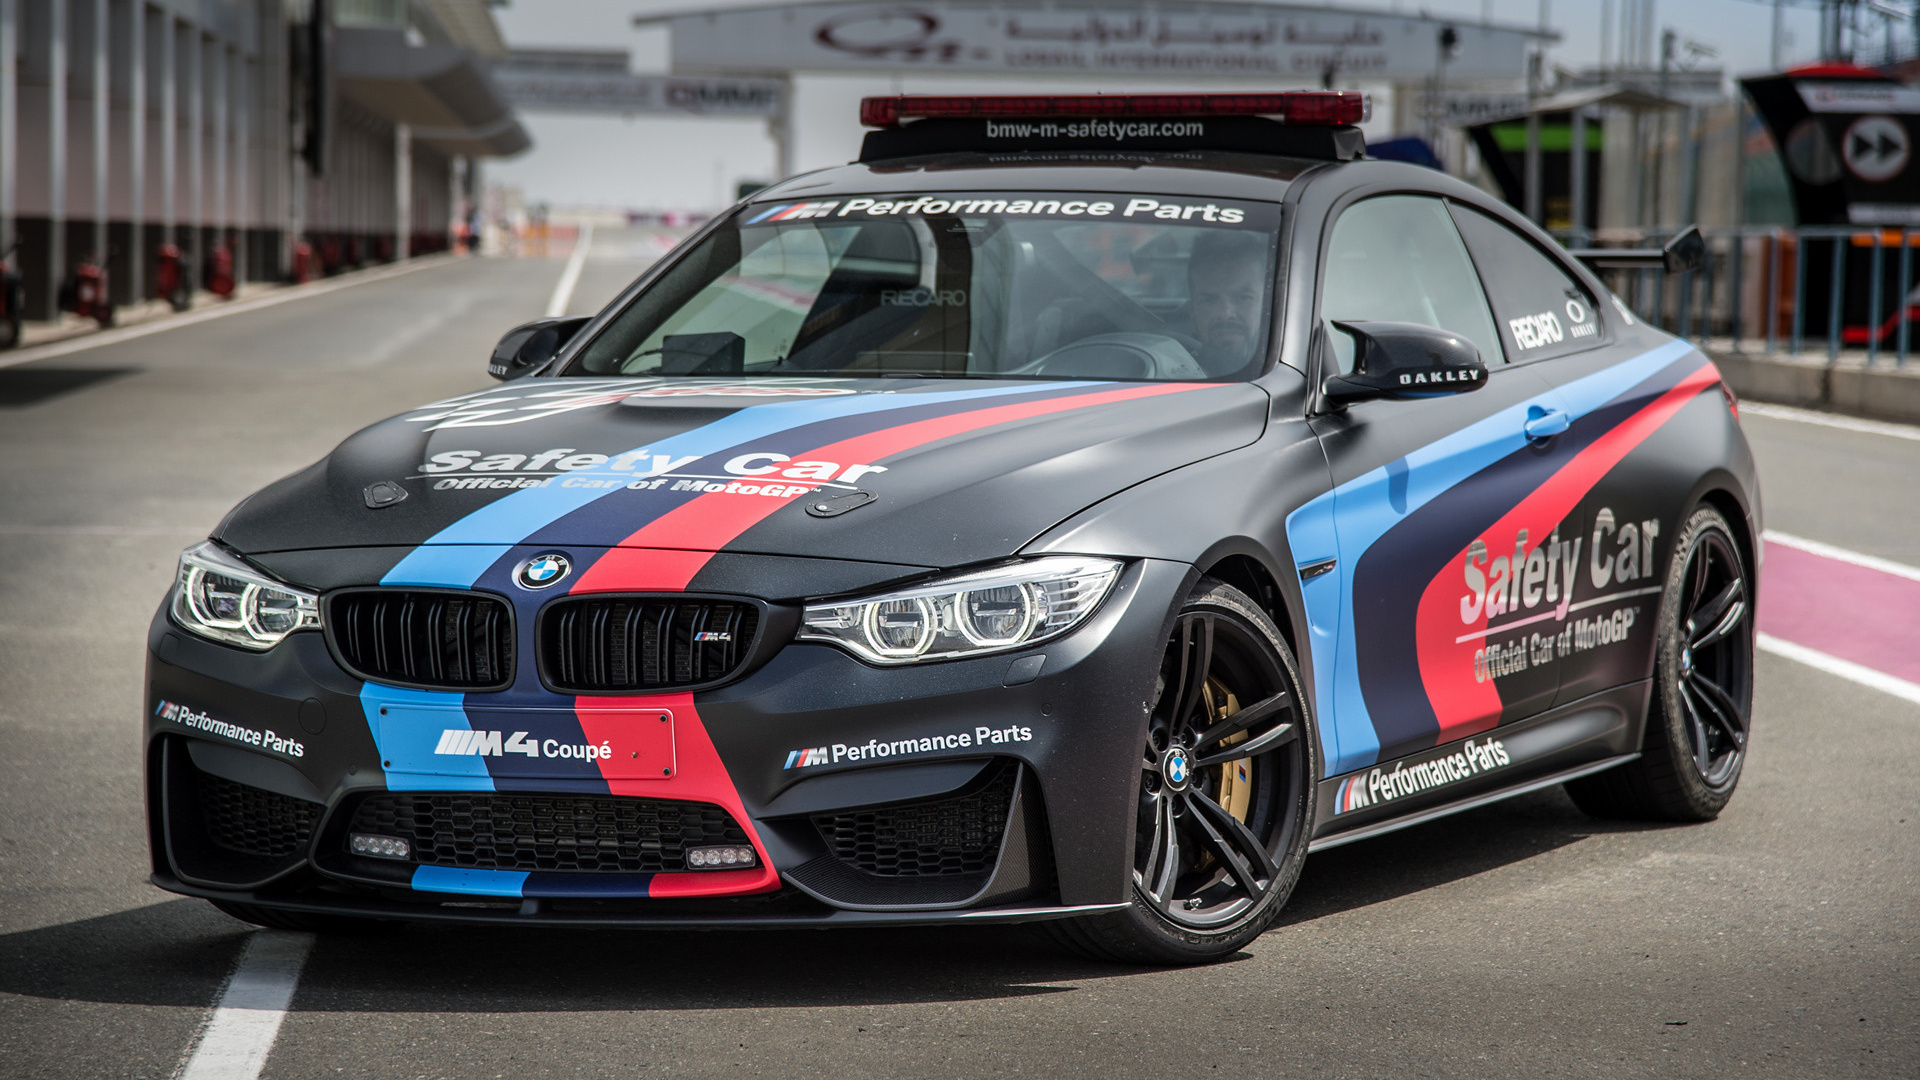 2019 BMW M4 Coupe DTM Safety Car photo - 3